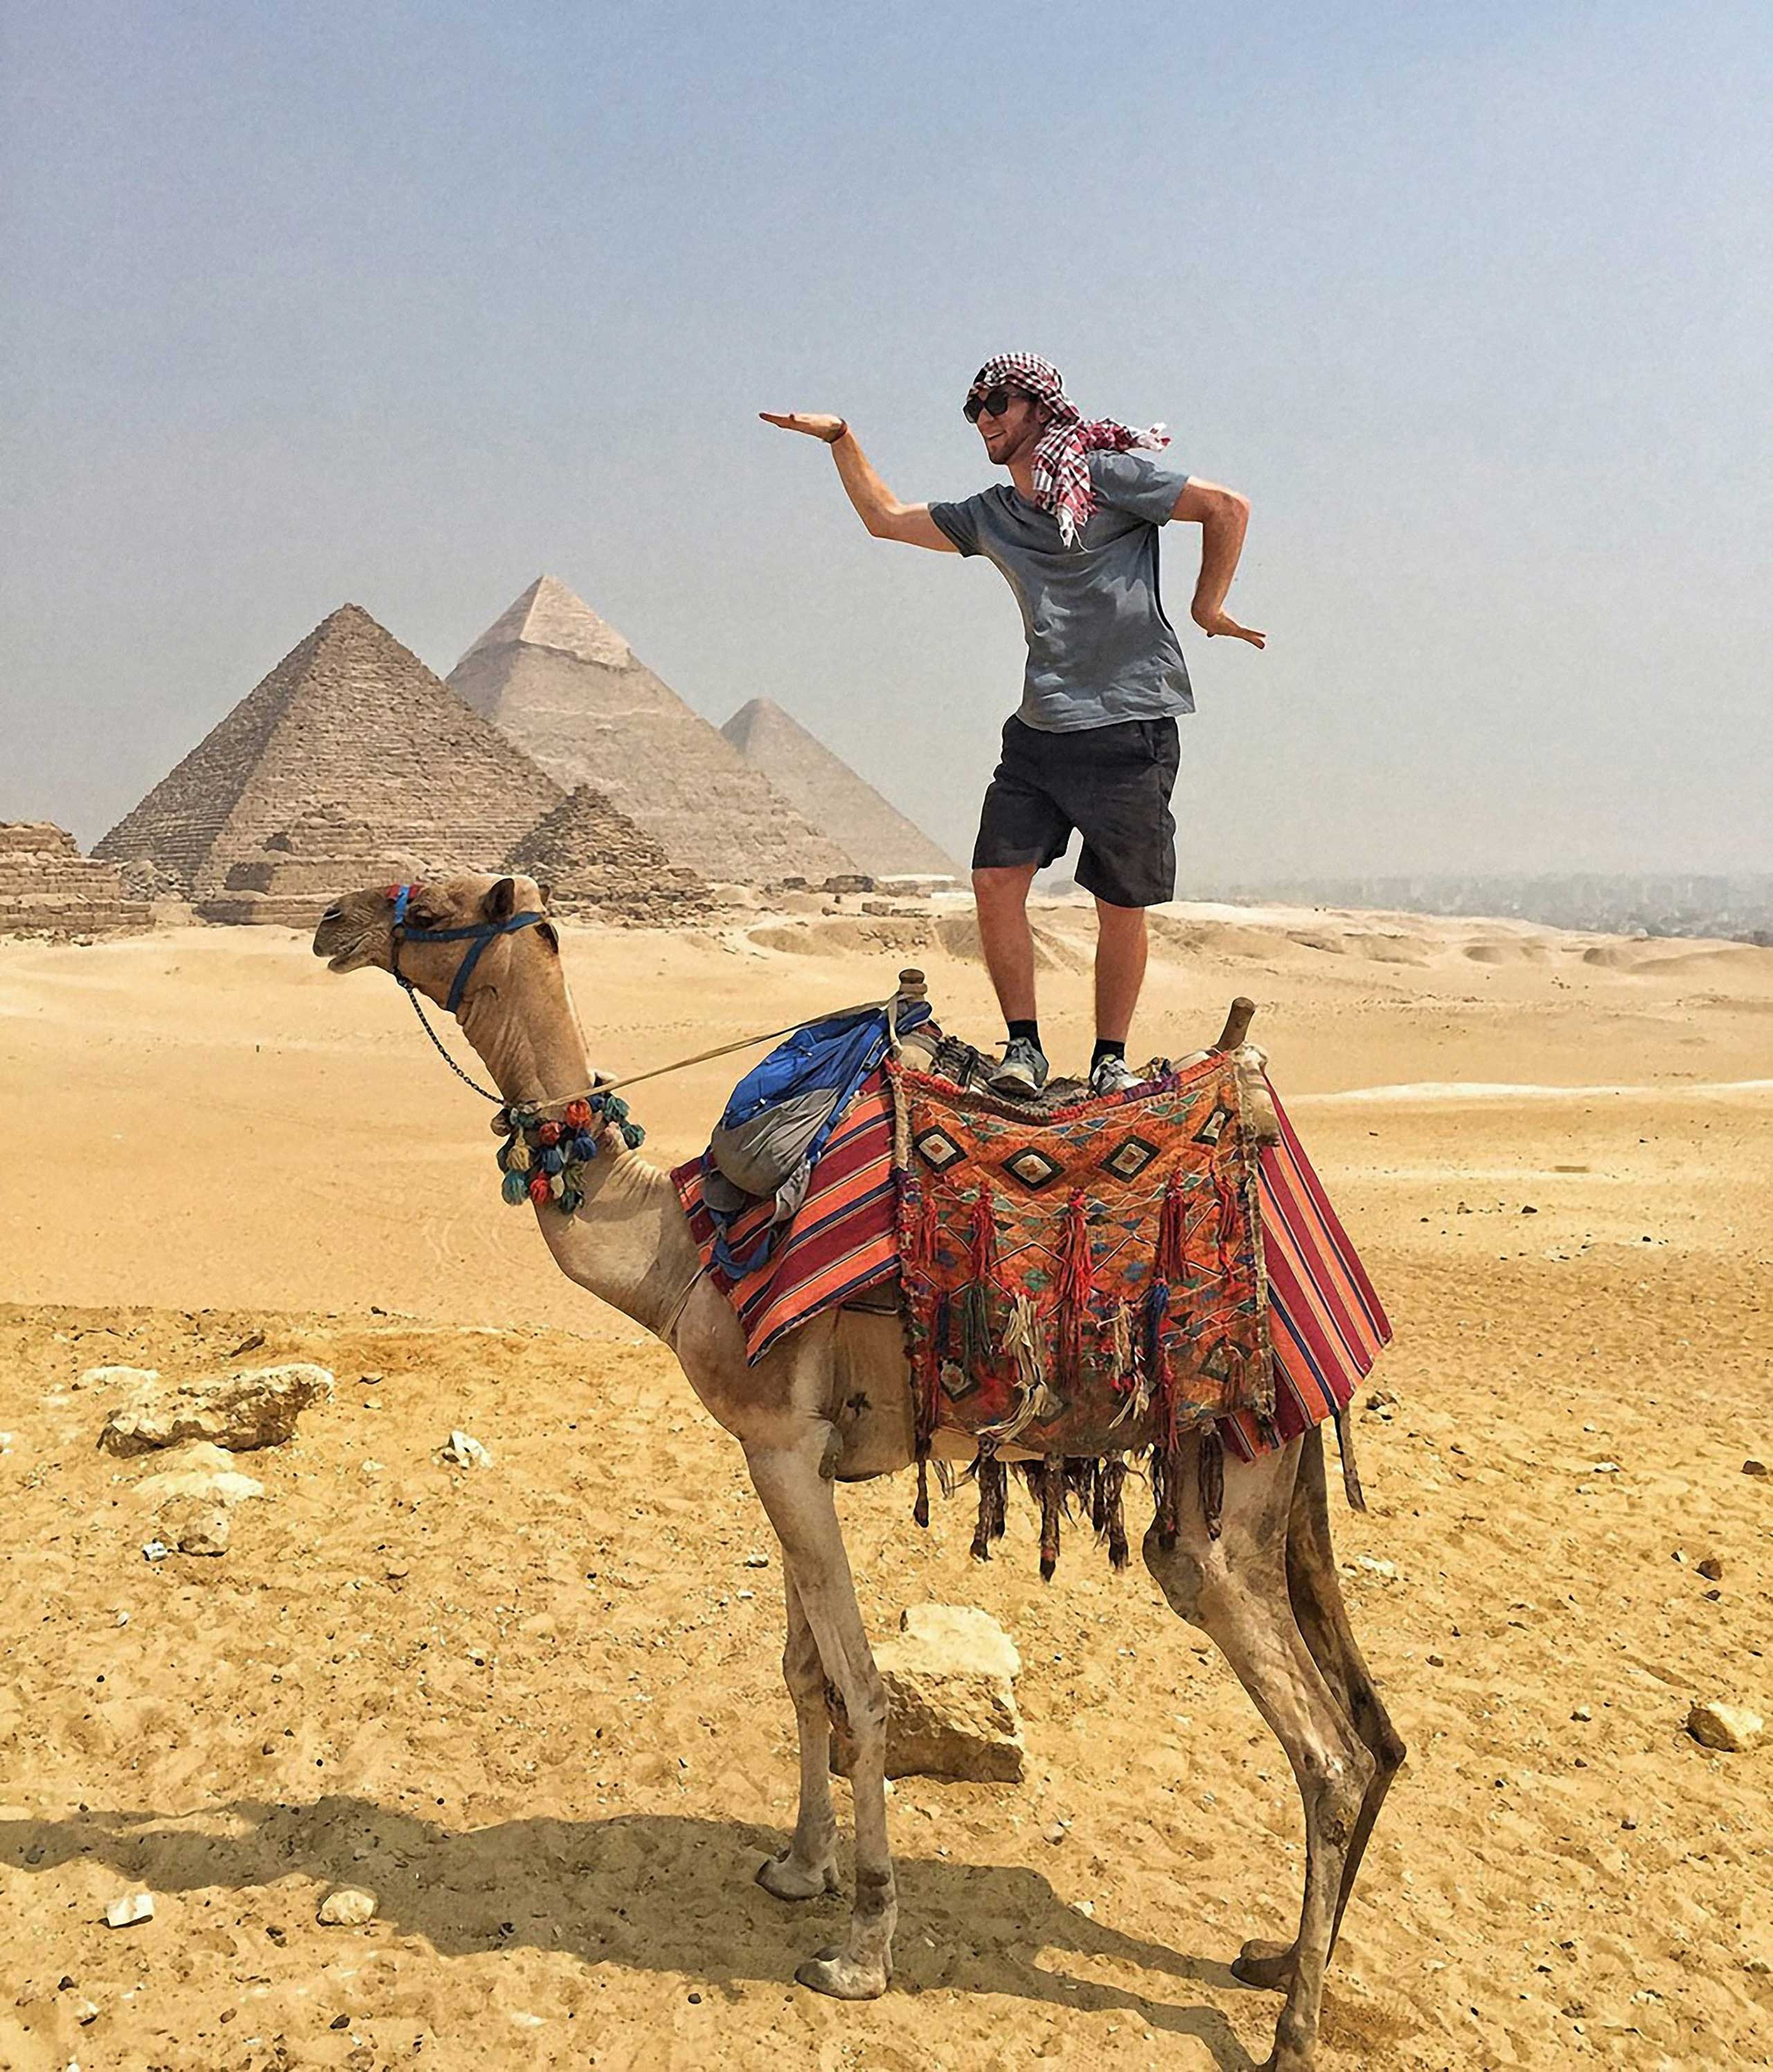 Egyptian Walk On a Camel.  I'm glad that I came here, because seeing the Pyramids of Giza was one of the best travel experiences of my life. I took a 2 hour camel ride around the desert and it was something I'll never forget.'' Cairo, Egypt, 2015.